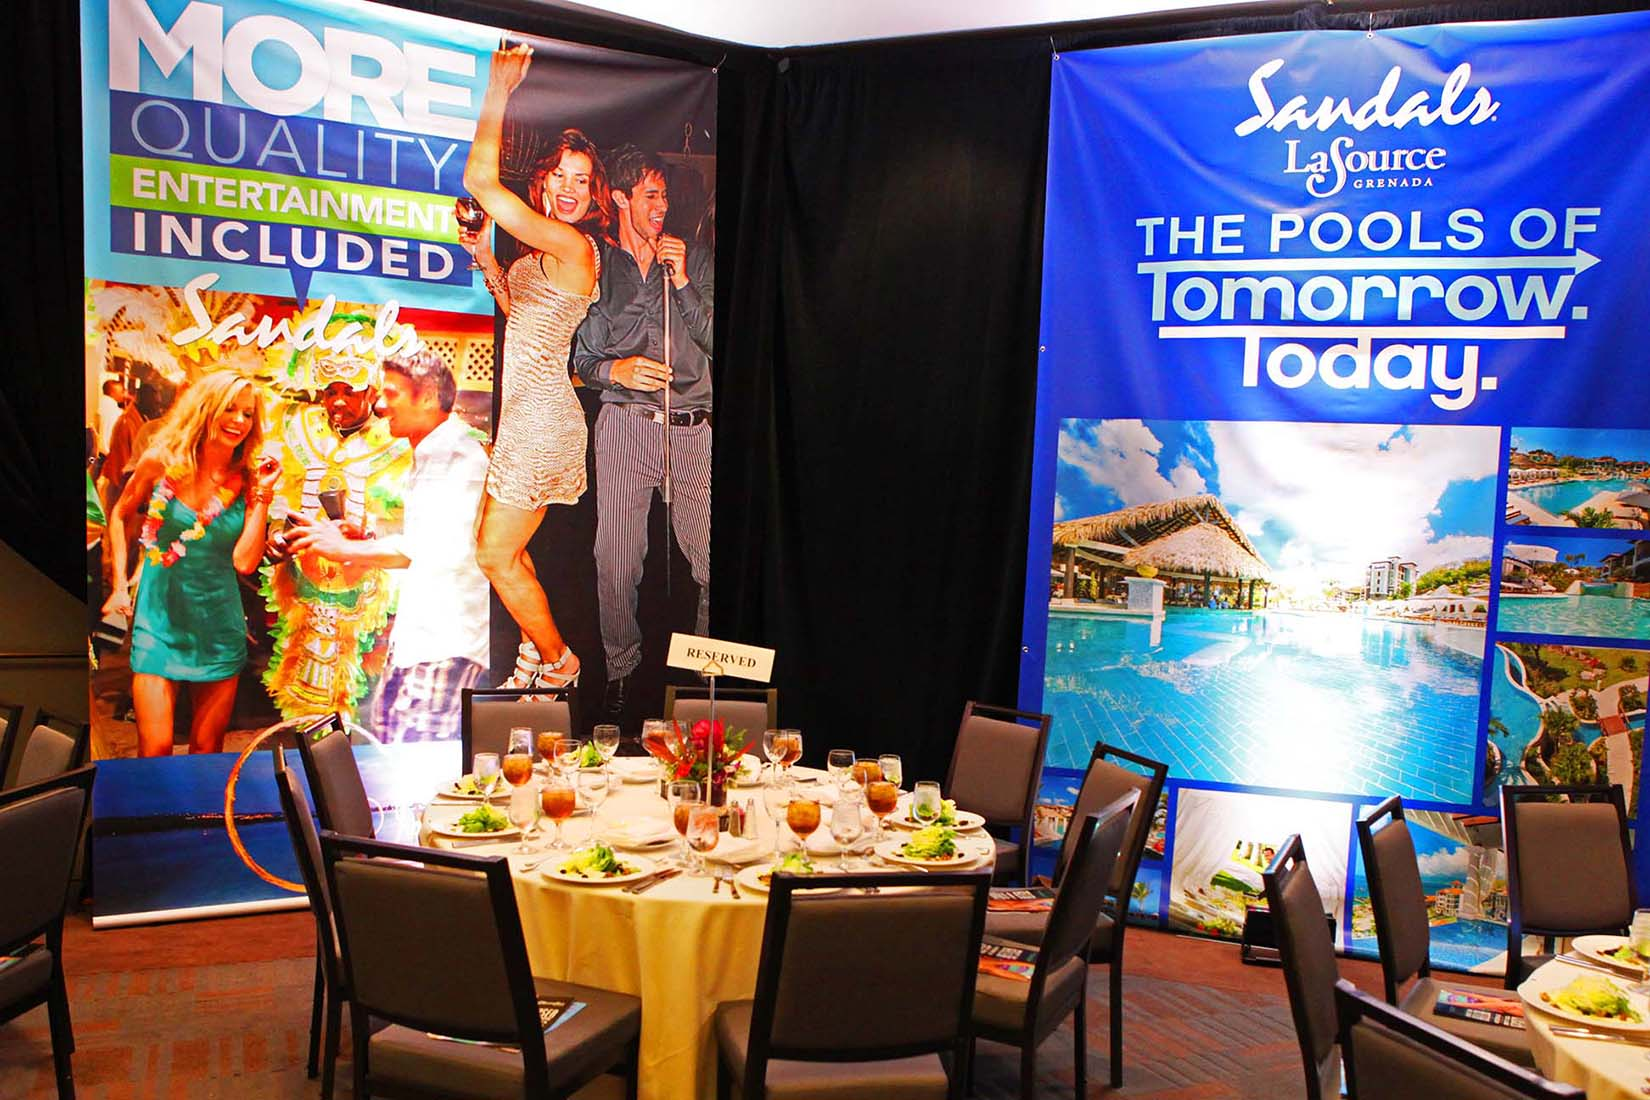 a table set up and sandals banners in the background